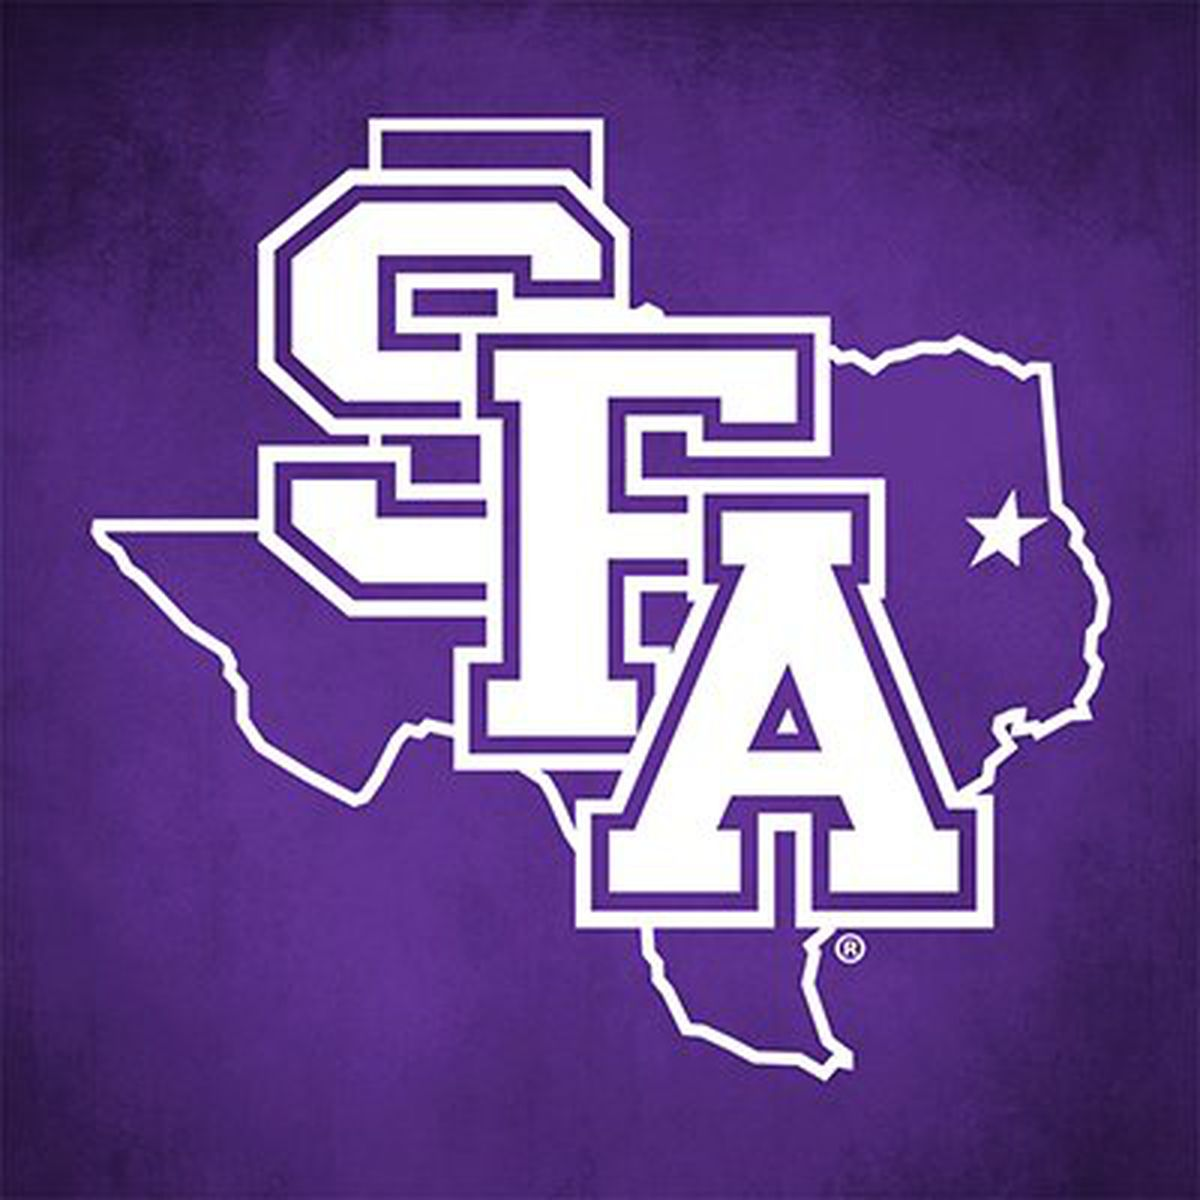 SFA logo, old but retained